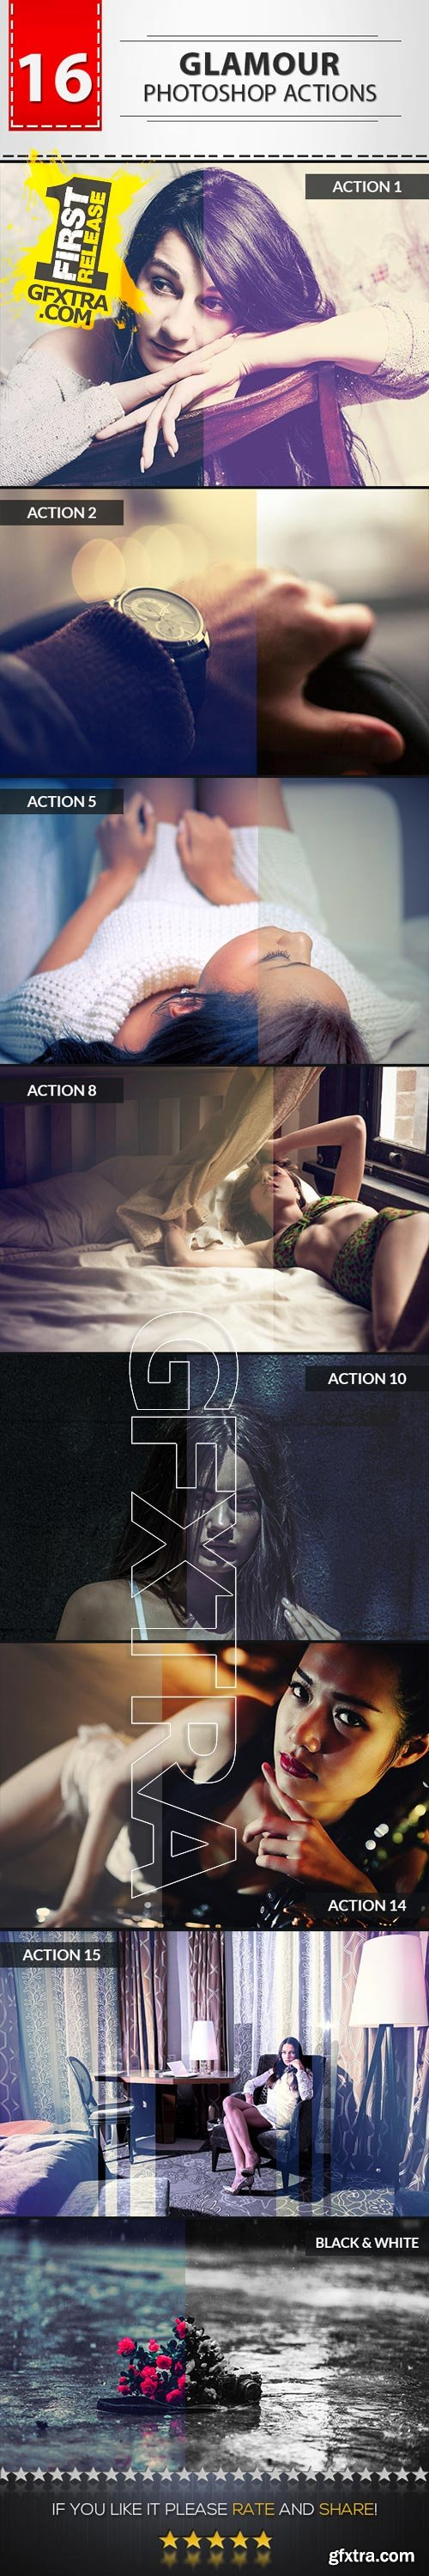 GraphicRiver - 16 Glamour Photoshop Actions 9719399